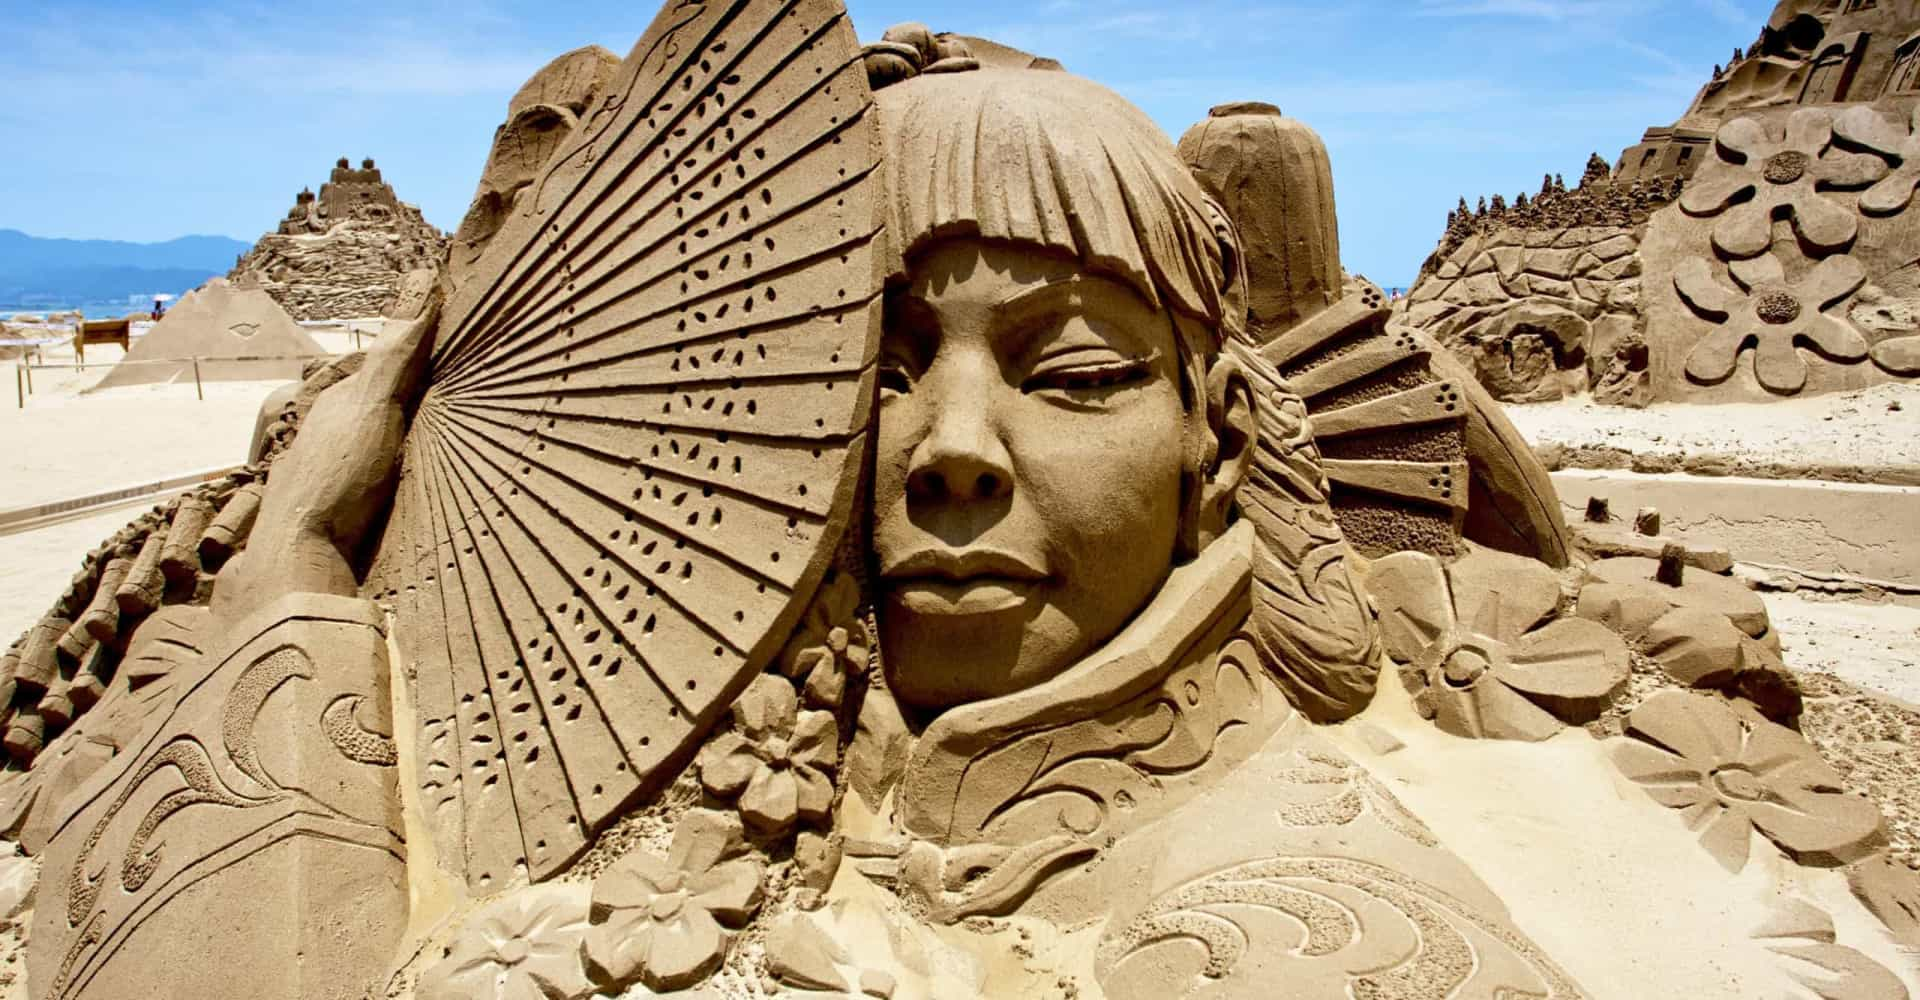 Sand sculptures to inspire the artist in you